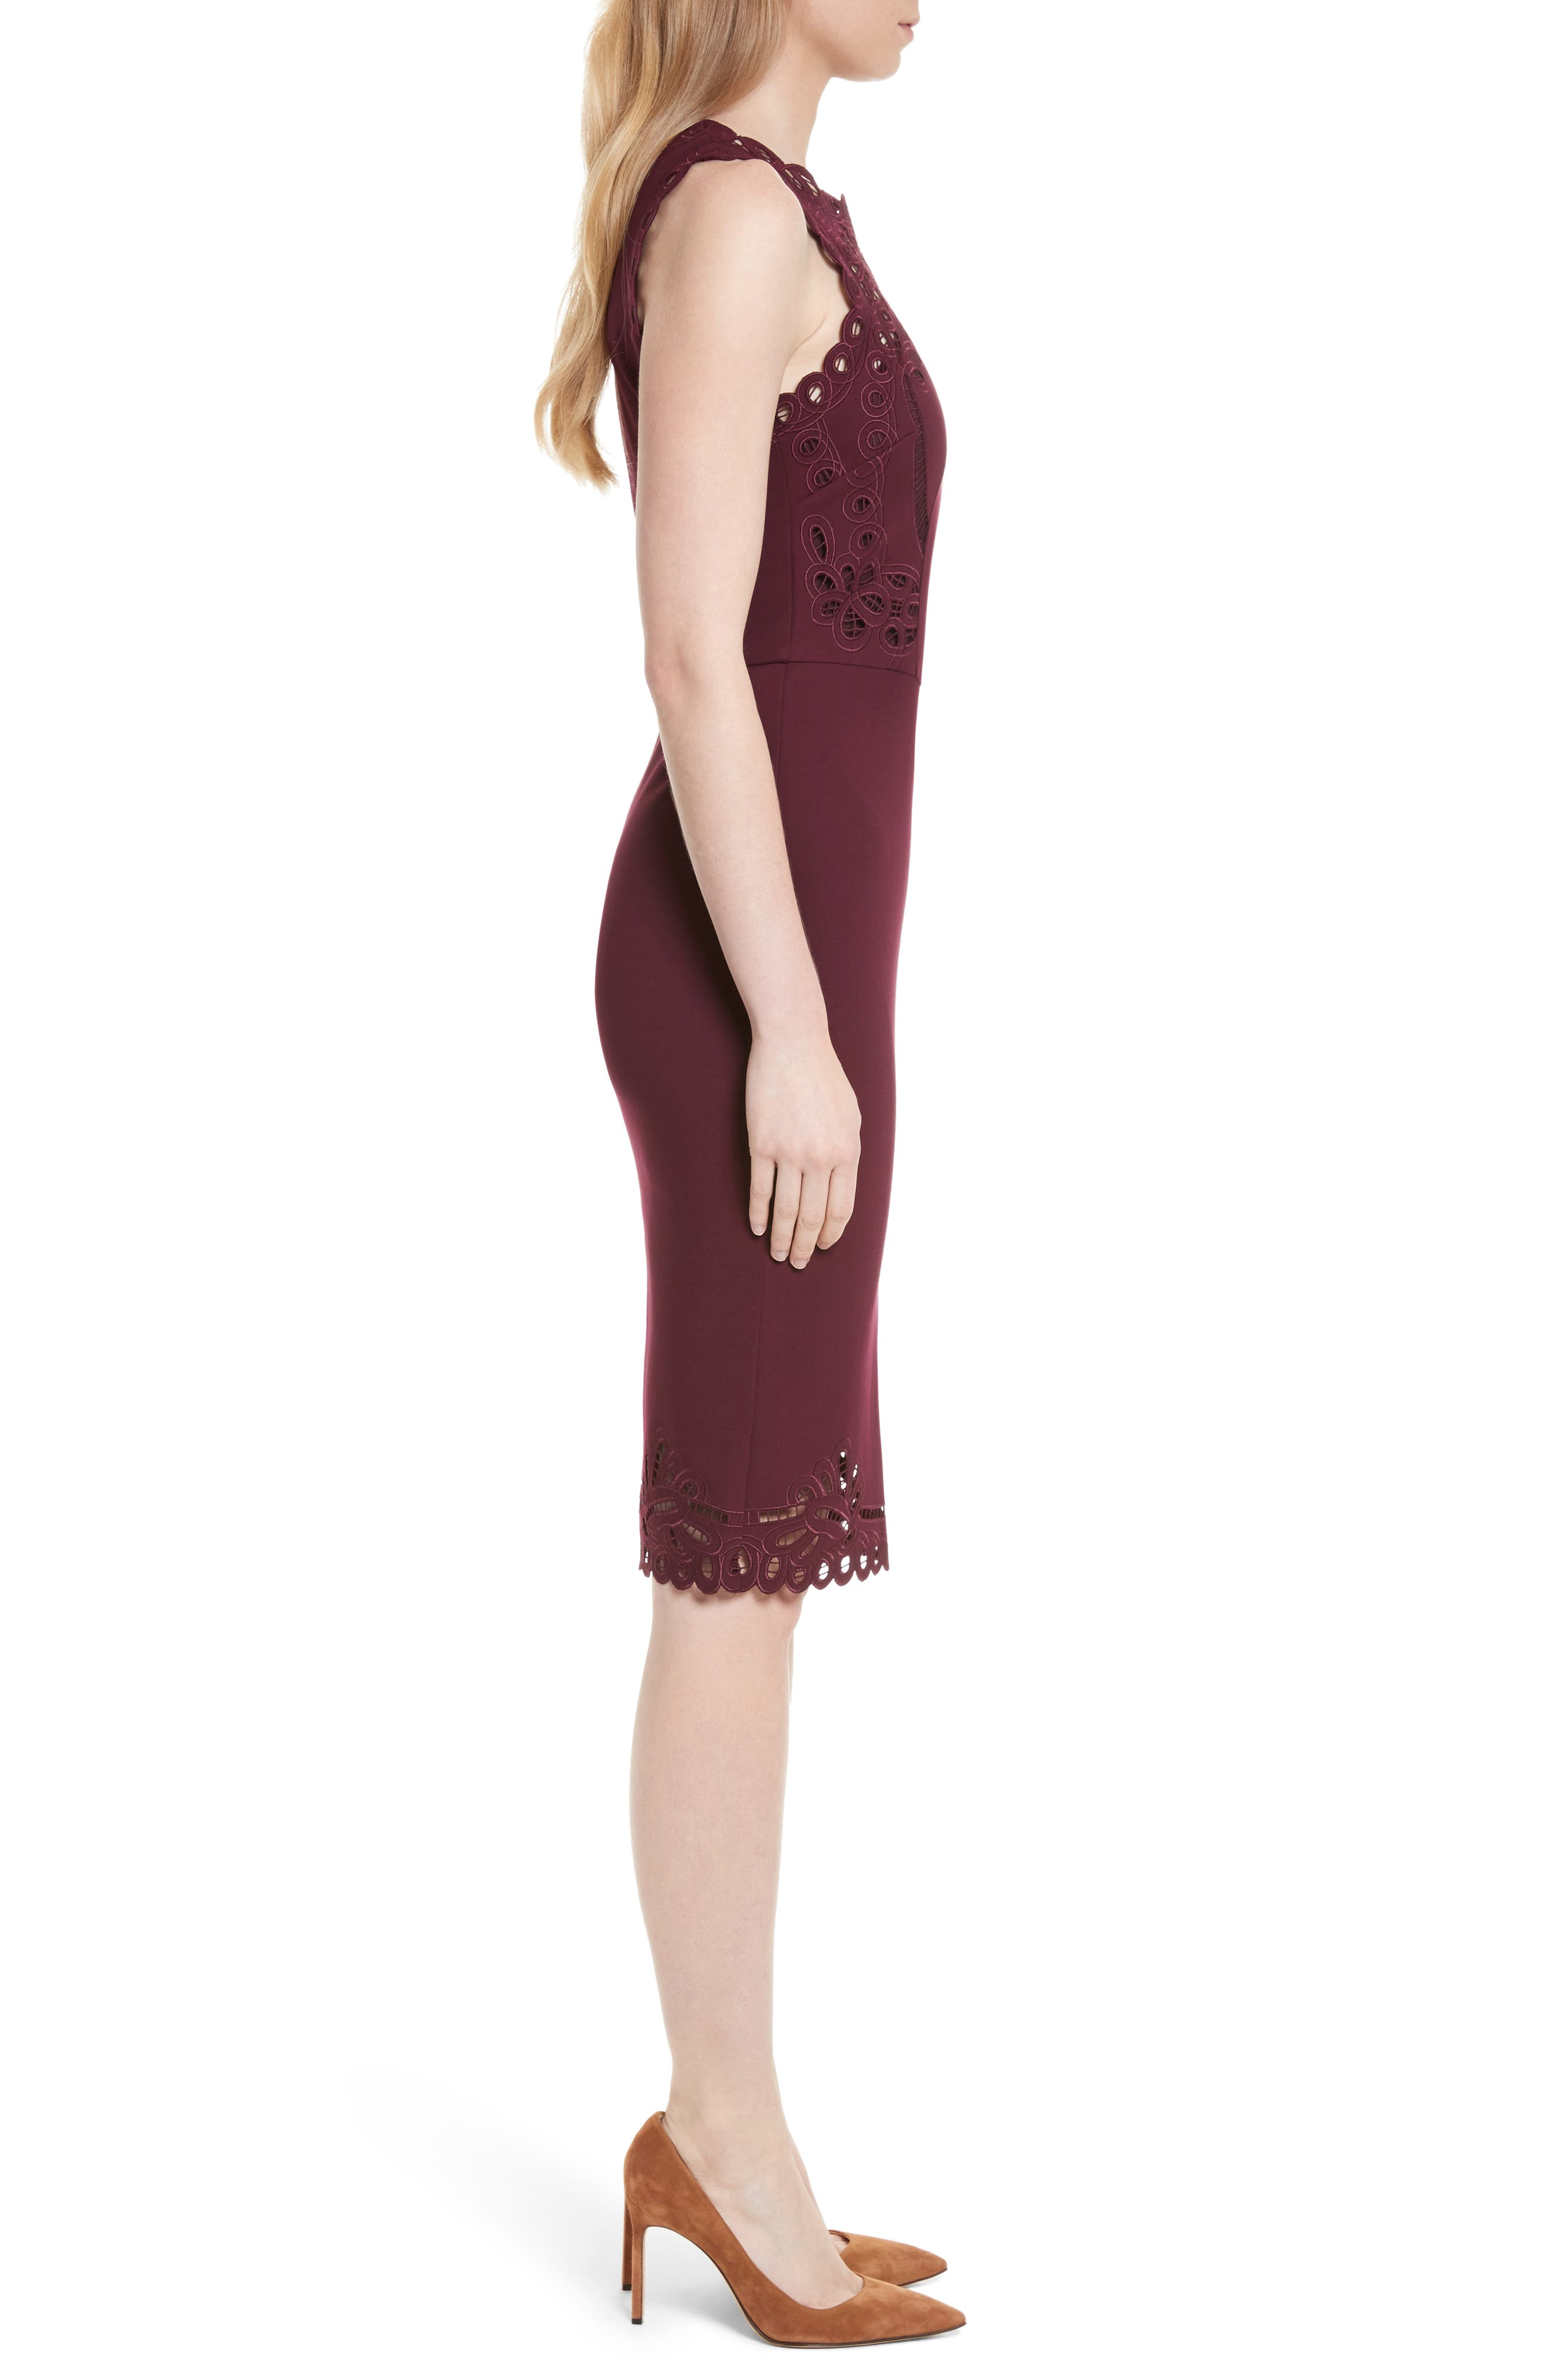 Verita Cutout Yoke Sheath Dress,                             Alternate thumbnail 3, color,                             930